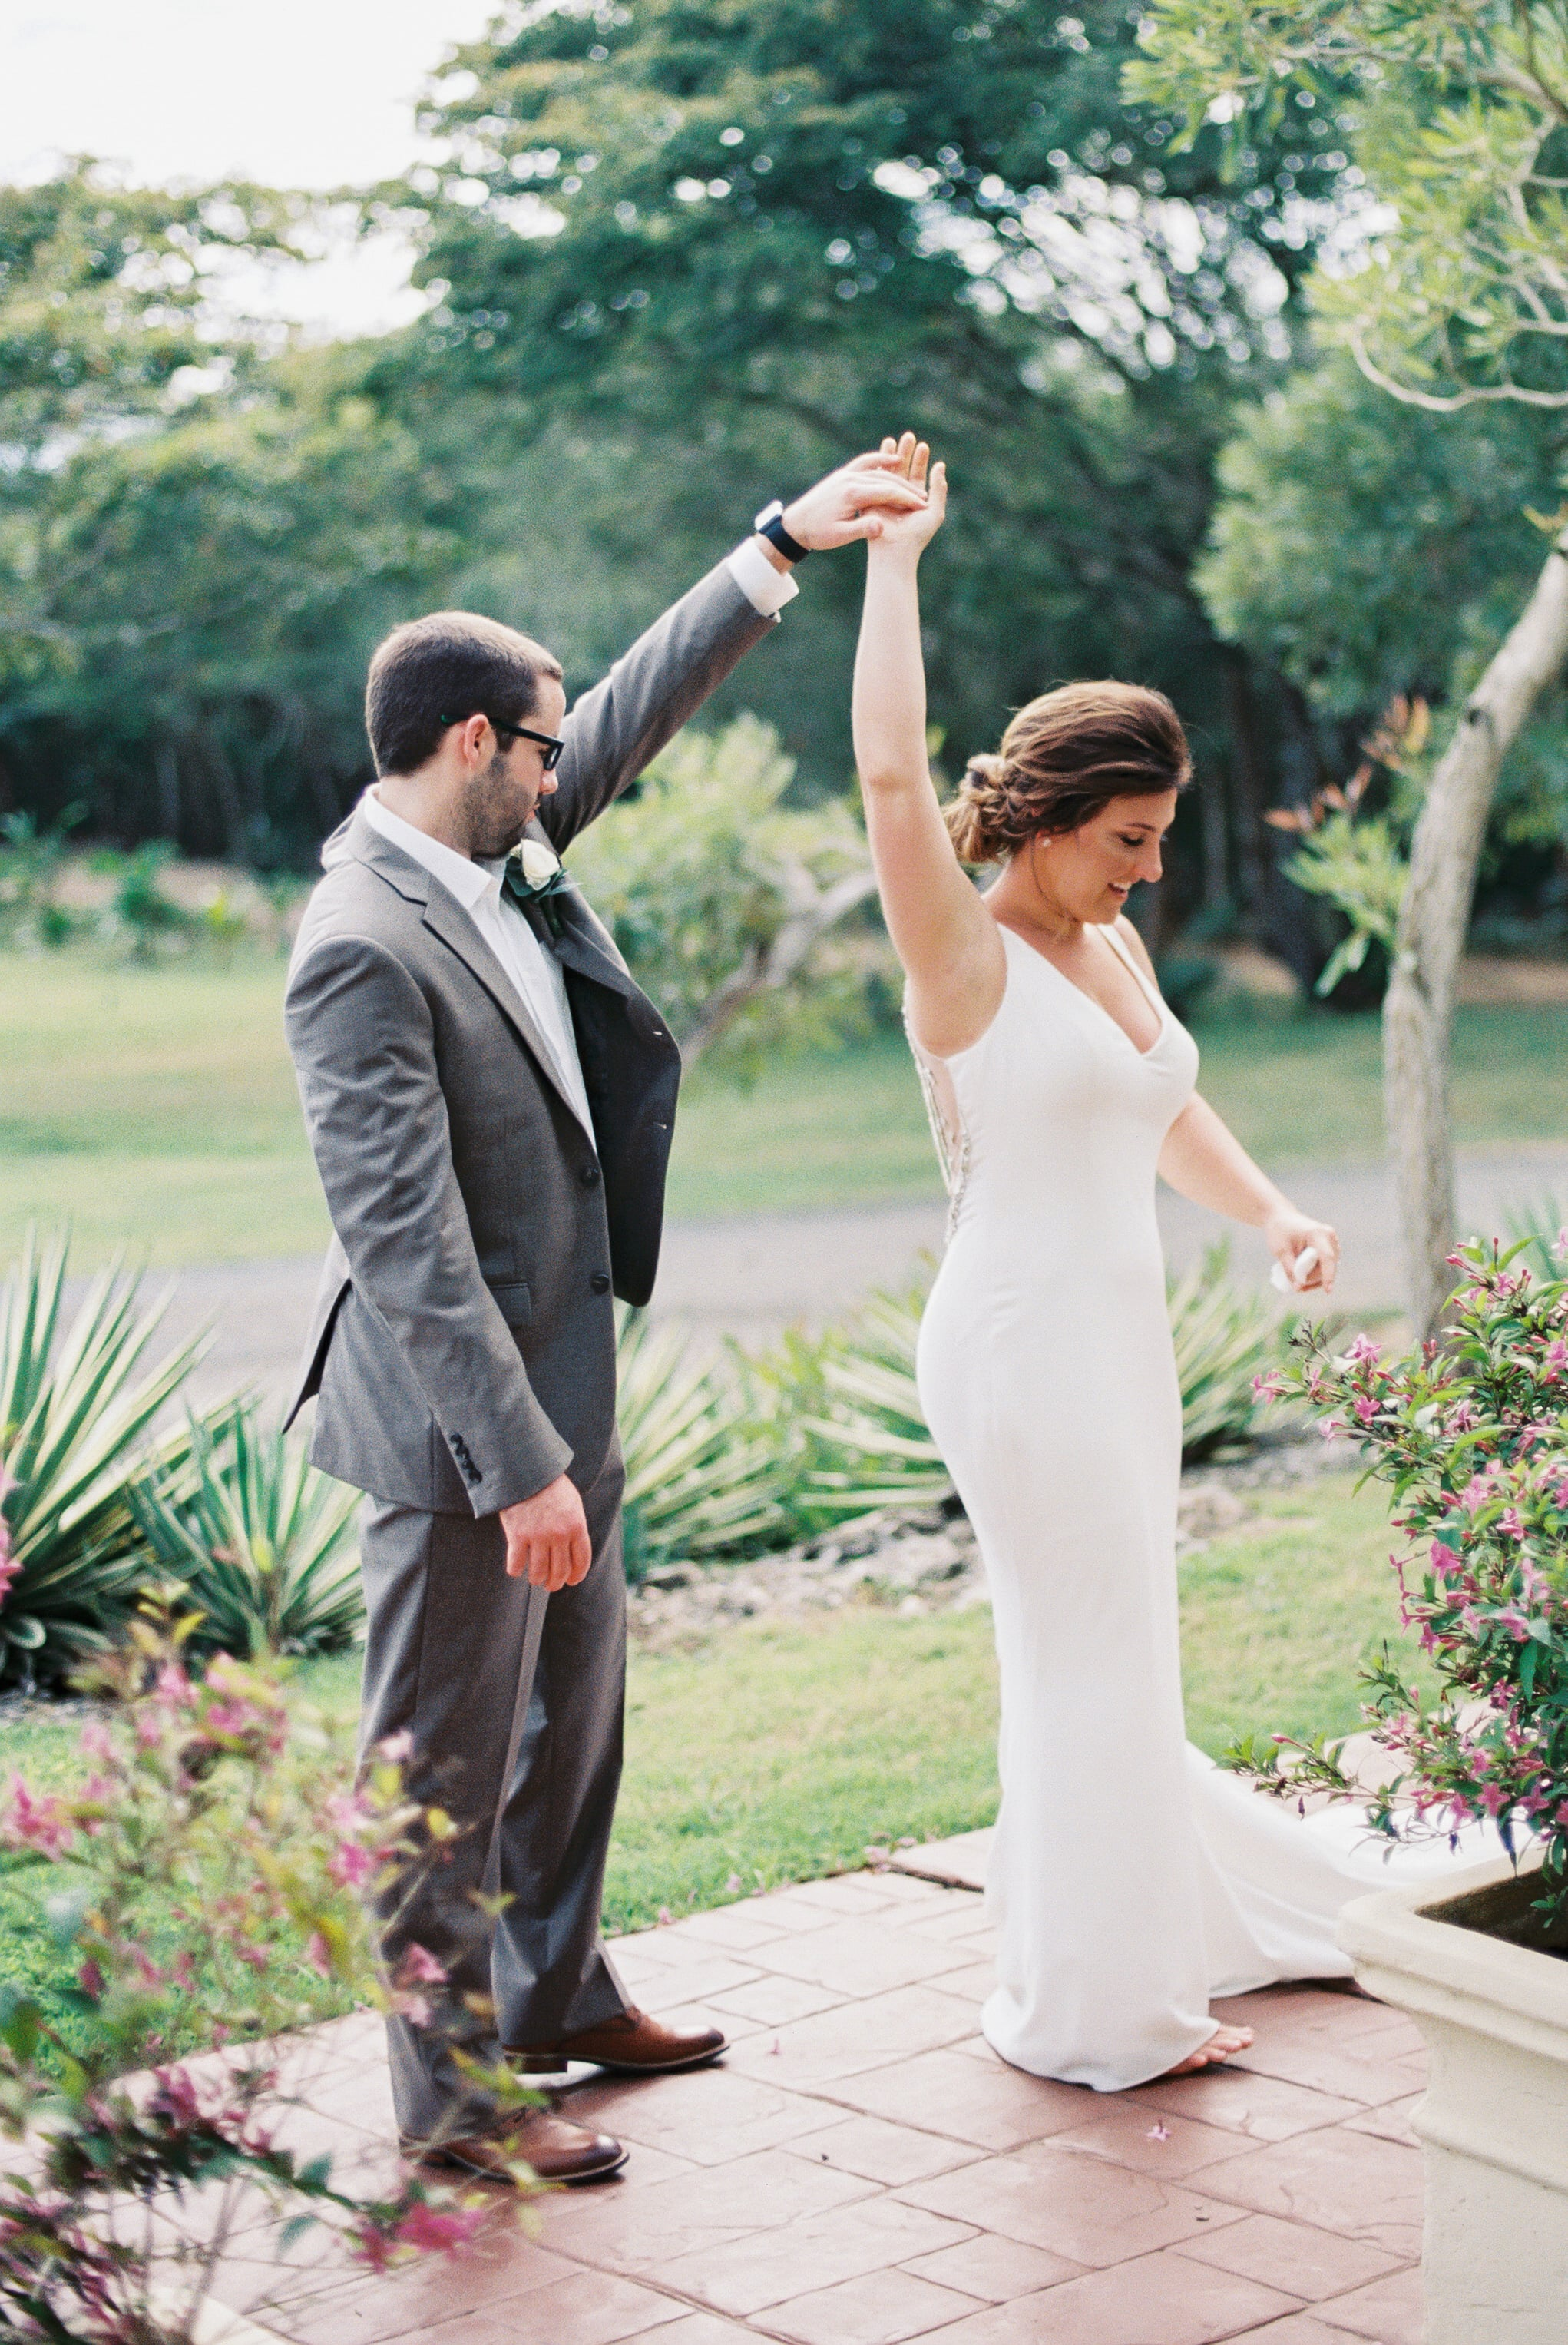 Ashley & Lance's Garden Destination Wedding in Dominican Republic, Photography by Asia Pimentel Photography for ADRIANA Magazine (Issue II)